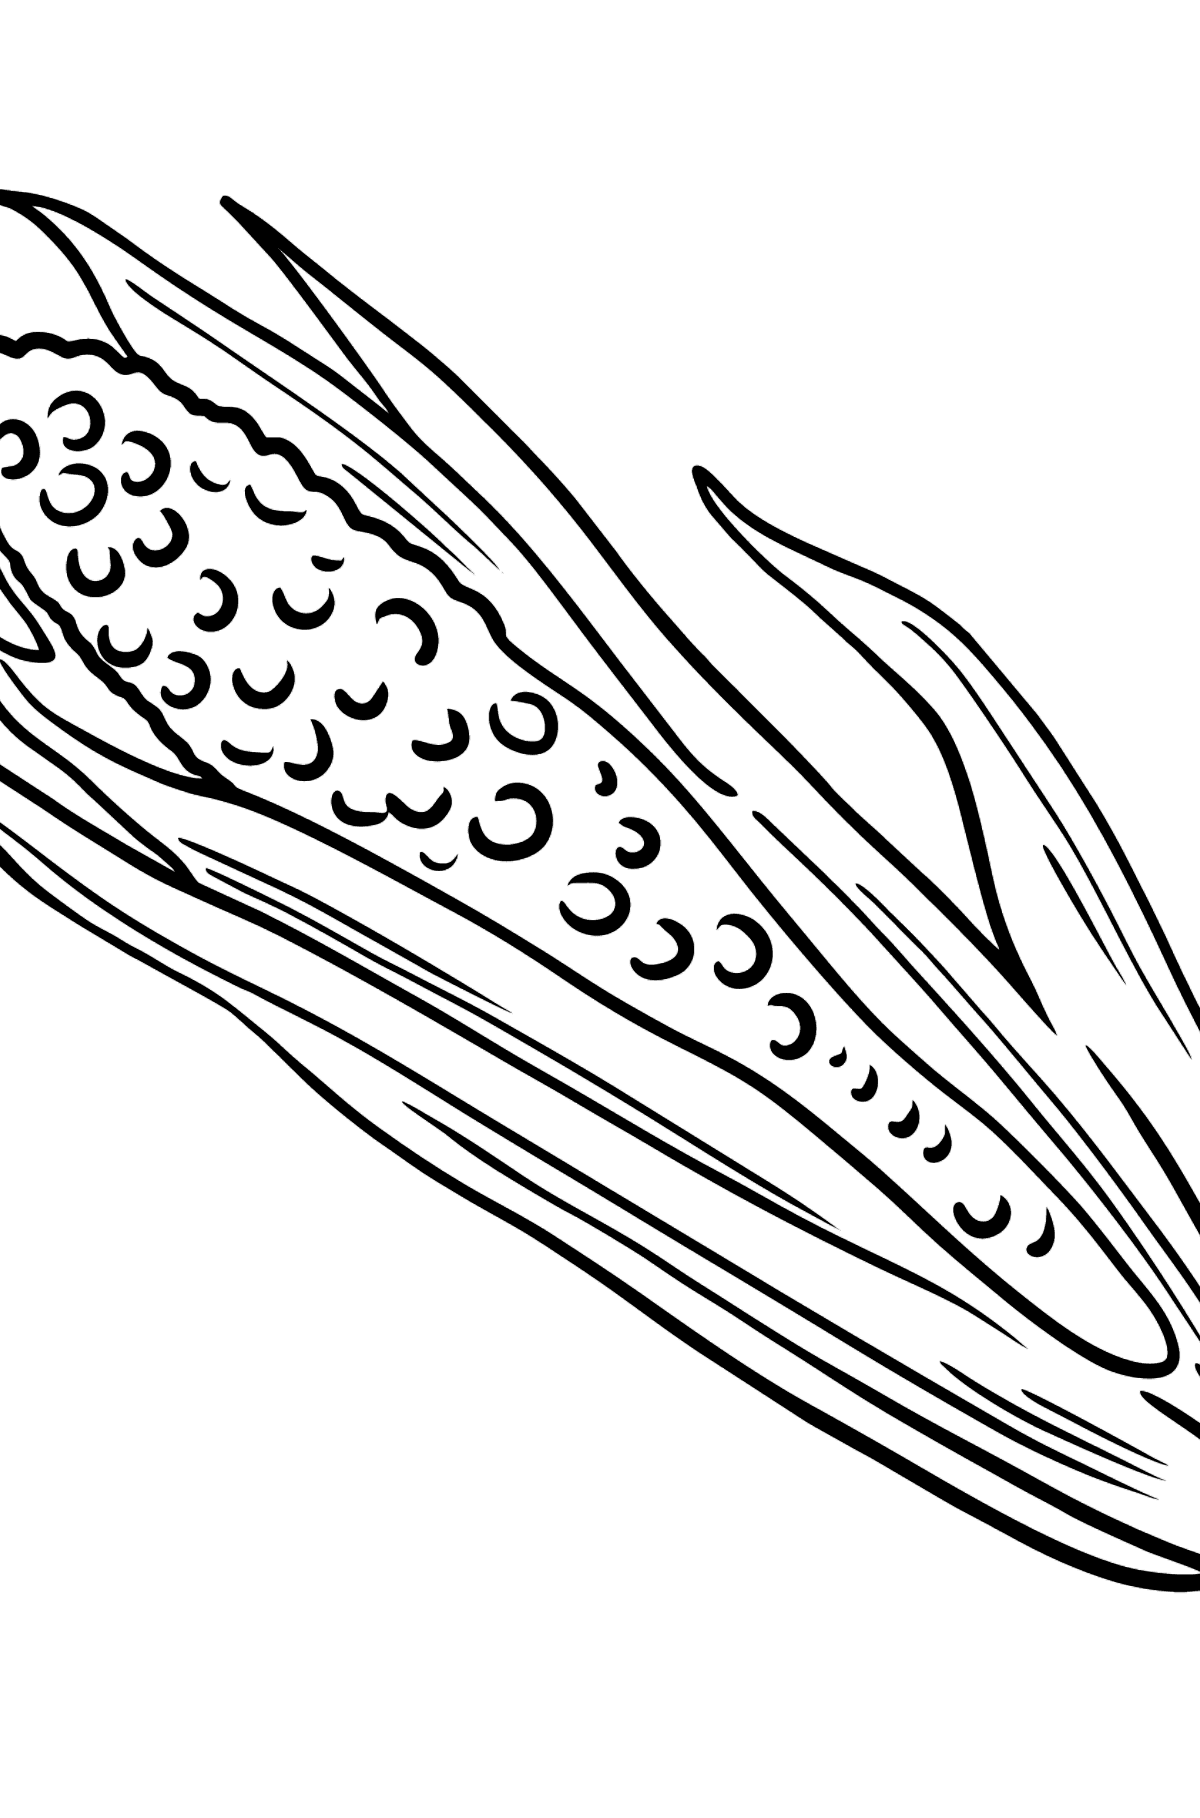 Corn coloring page - Coloring Pages for Kids